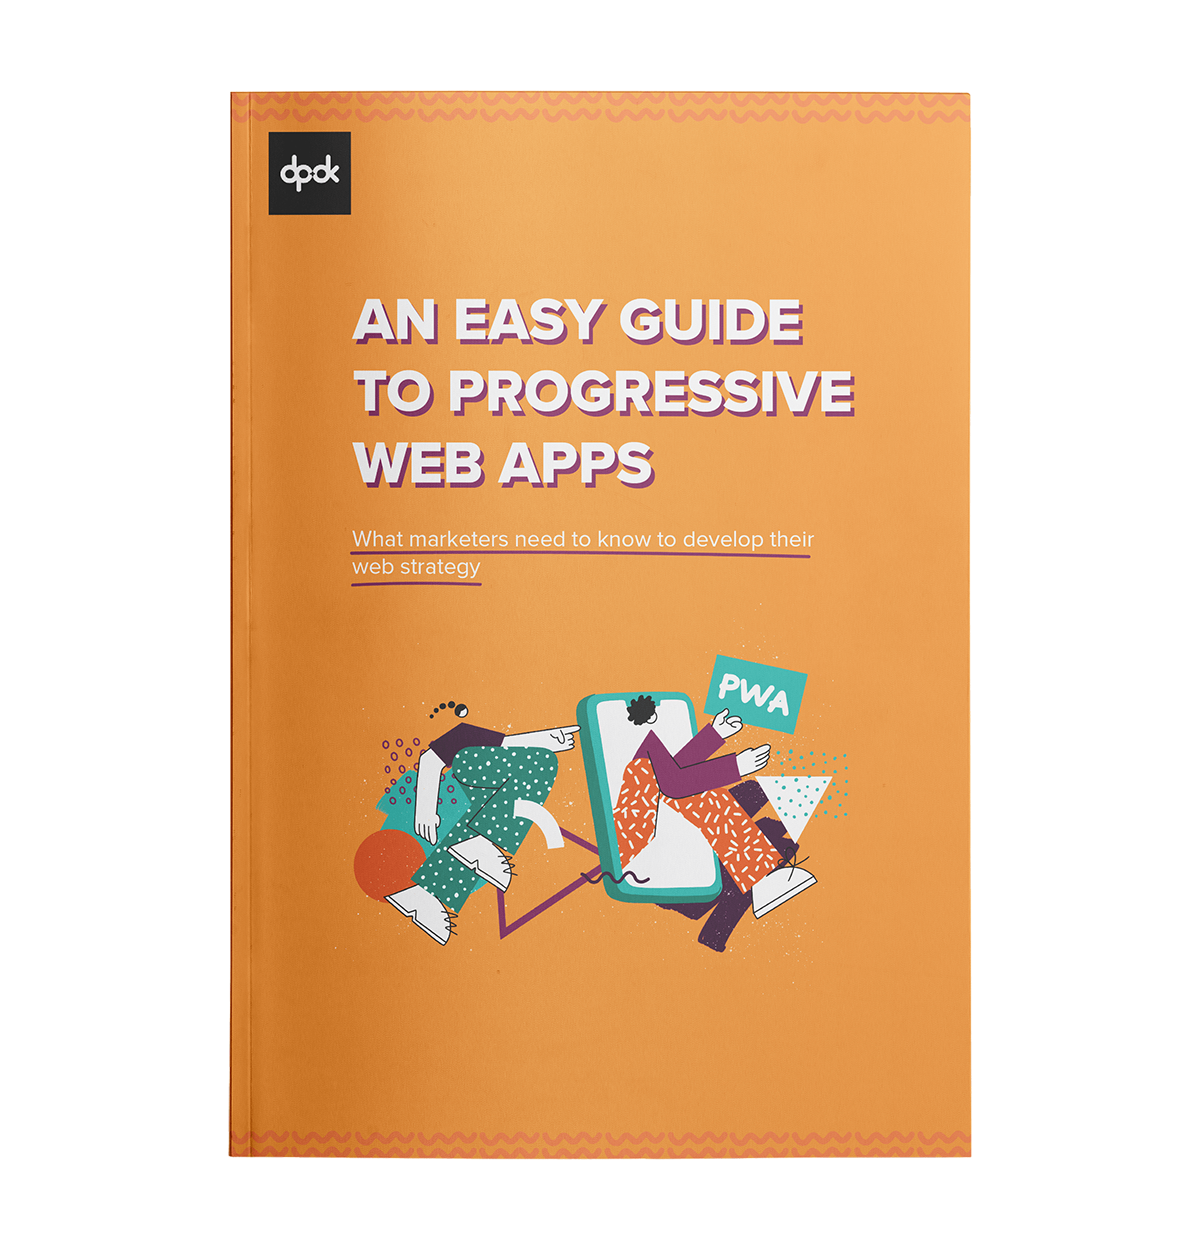 An Easy Guide to Progressive Web Apps